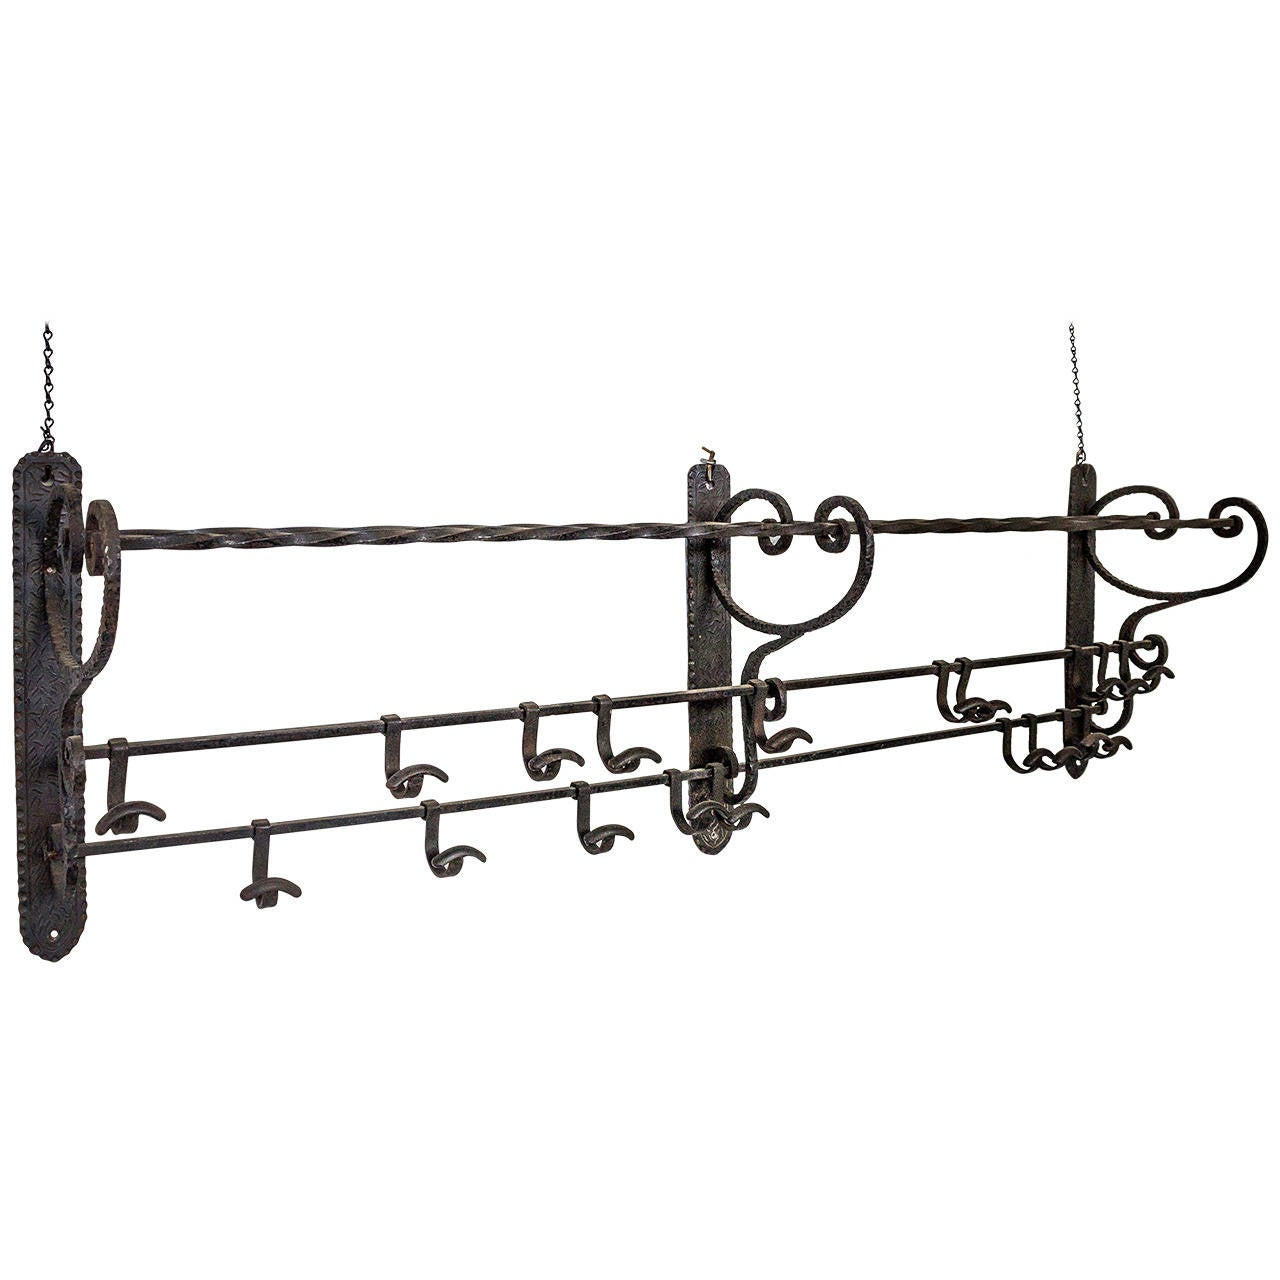 French 1920s Wrought Iron Coat Rack At 1stdibs